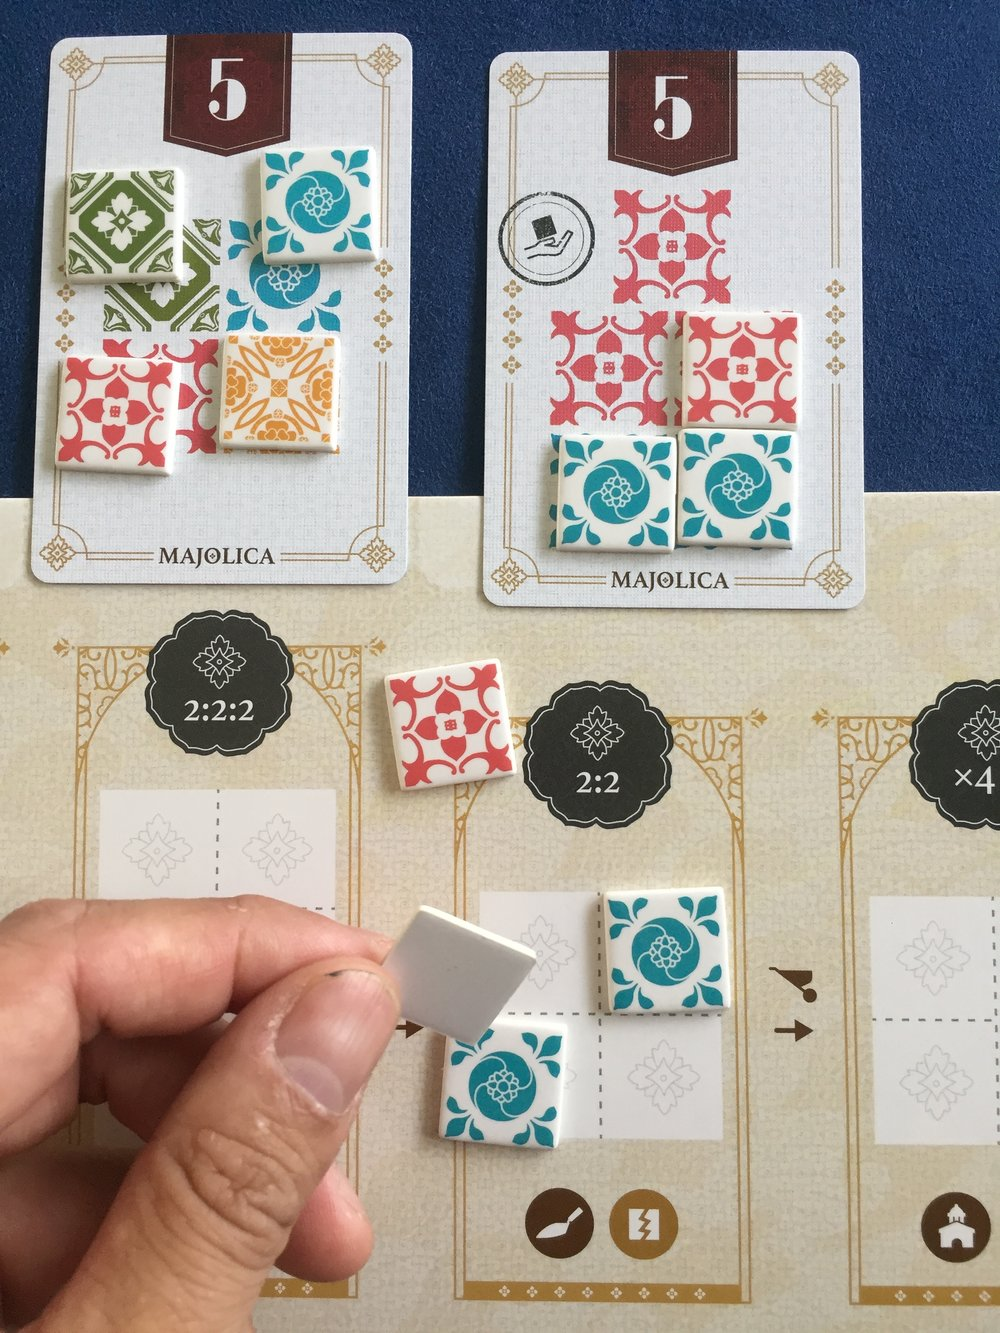 A9.  Push one tile up (dark trowel icon). Destroy one tile (yellow broken tile icon). Push the left over tiles to the right! The combo chain continues!